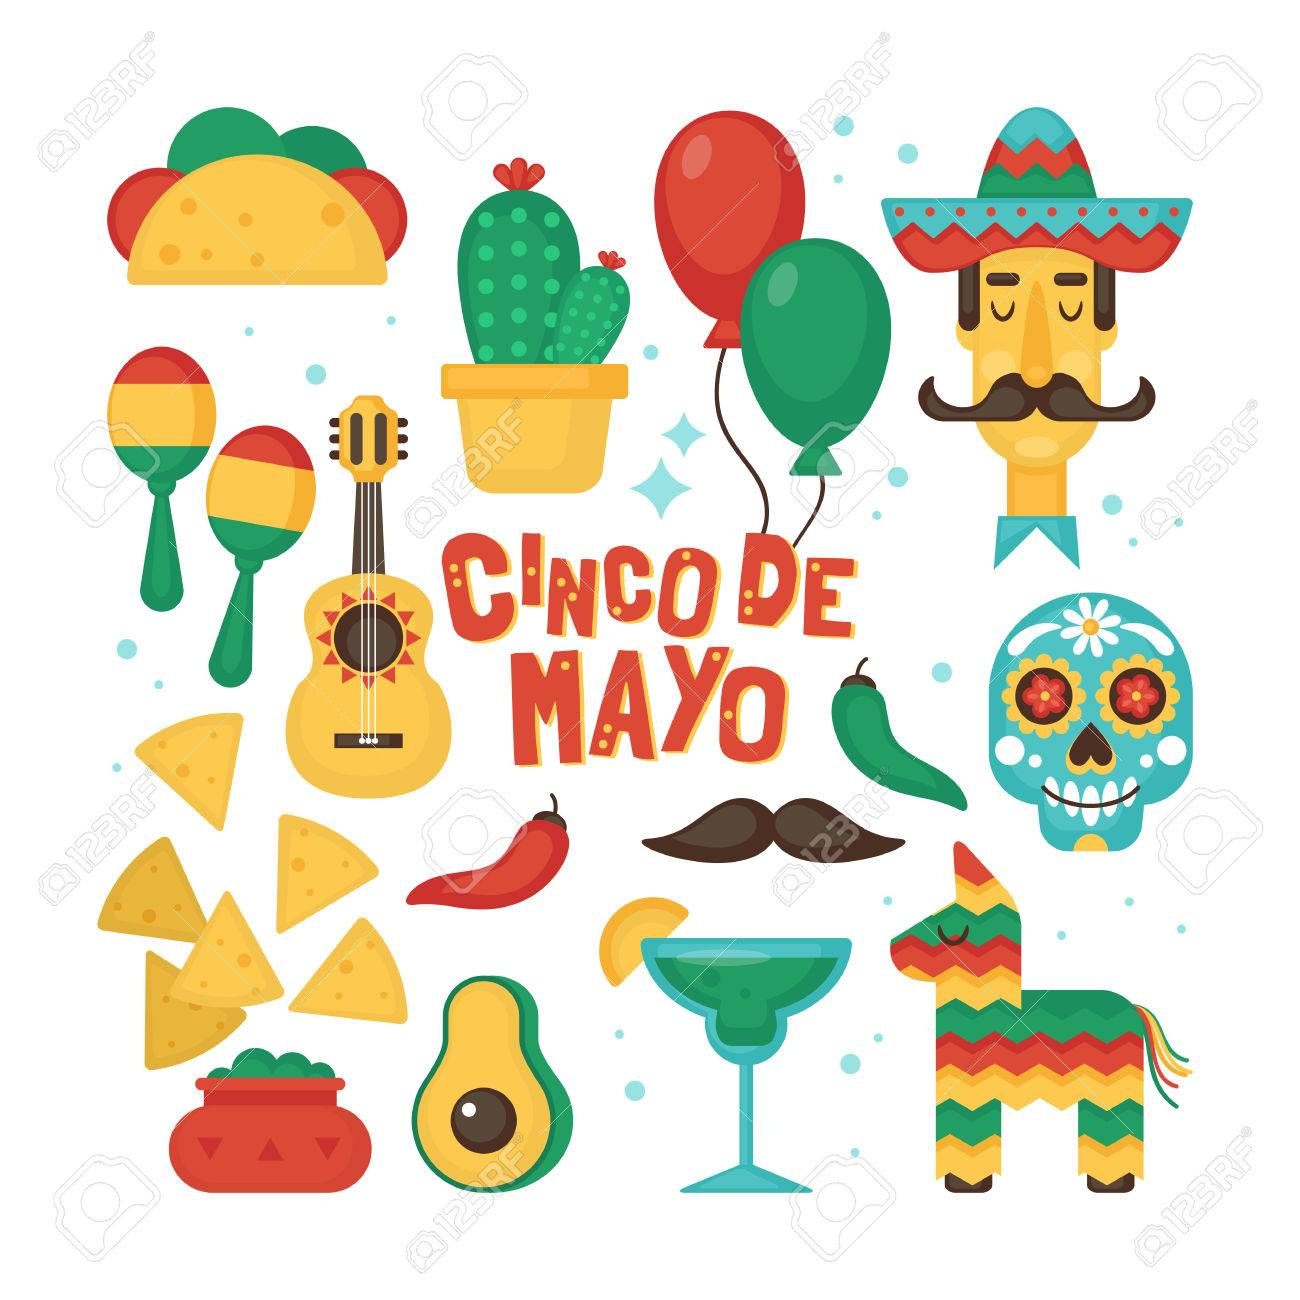 Cinco de mayo mexican holiday banner poster party invitation cinco de mayo mexican holiday banner poster party invitation and greeting card design set m4hsunfo